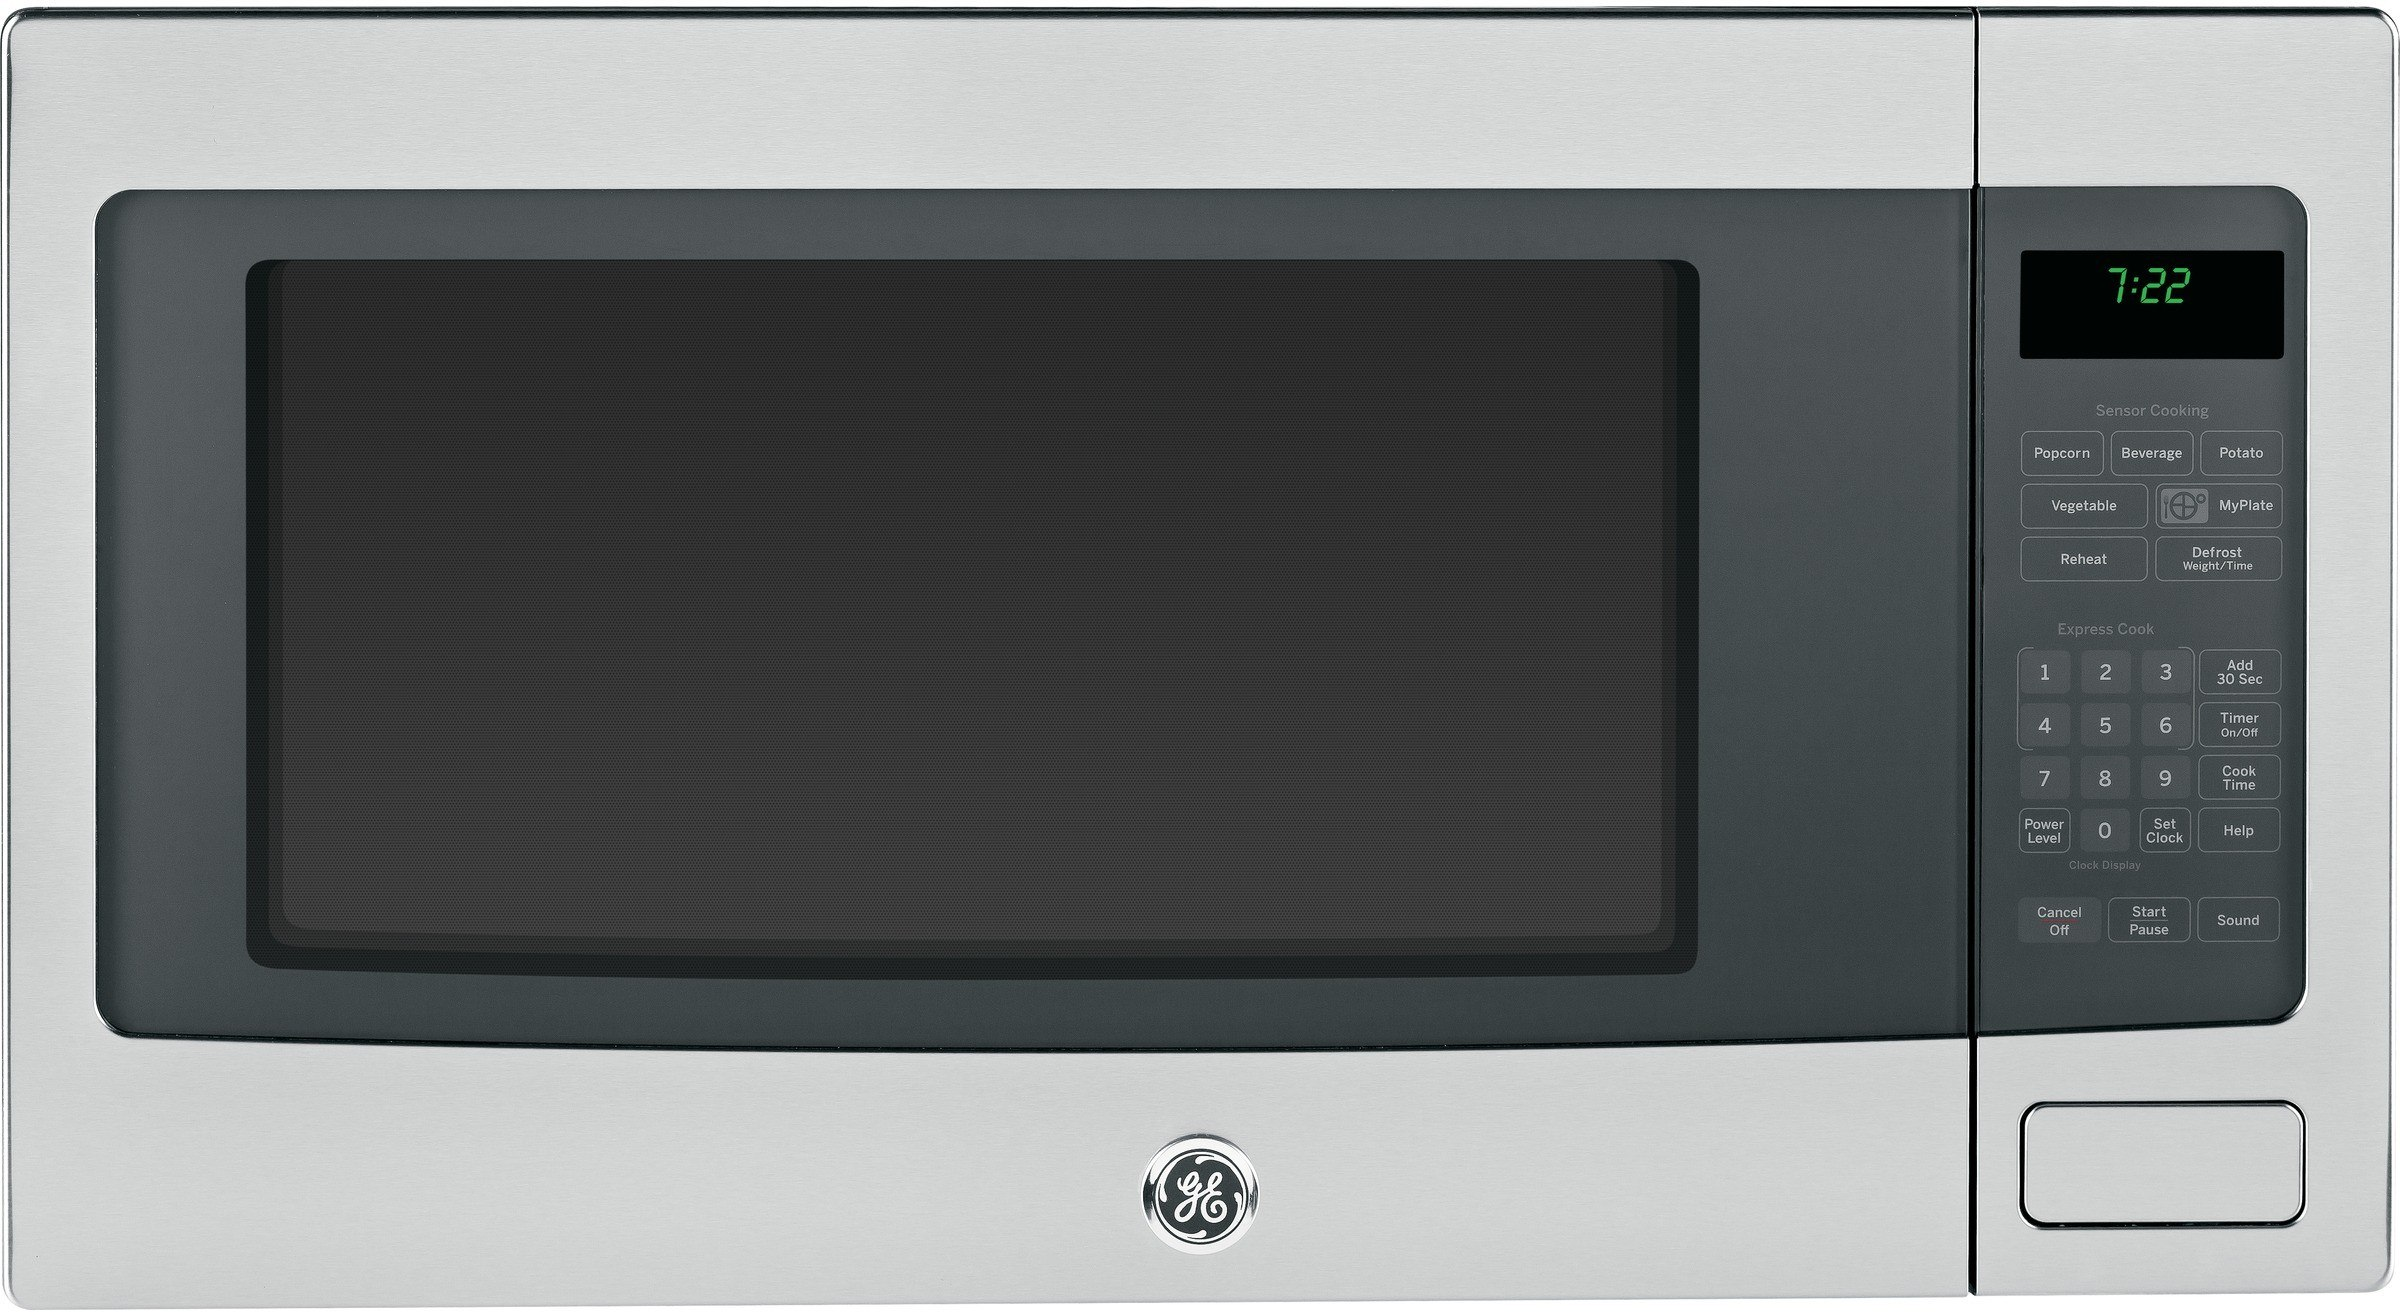 Ge Peb7226sfss 2 2 Cu Ft Countertop Microwave Oven With